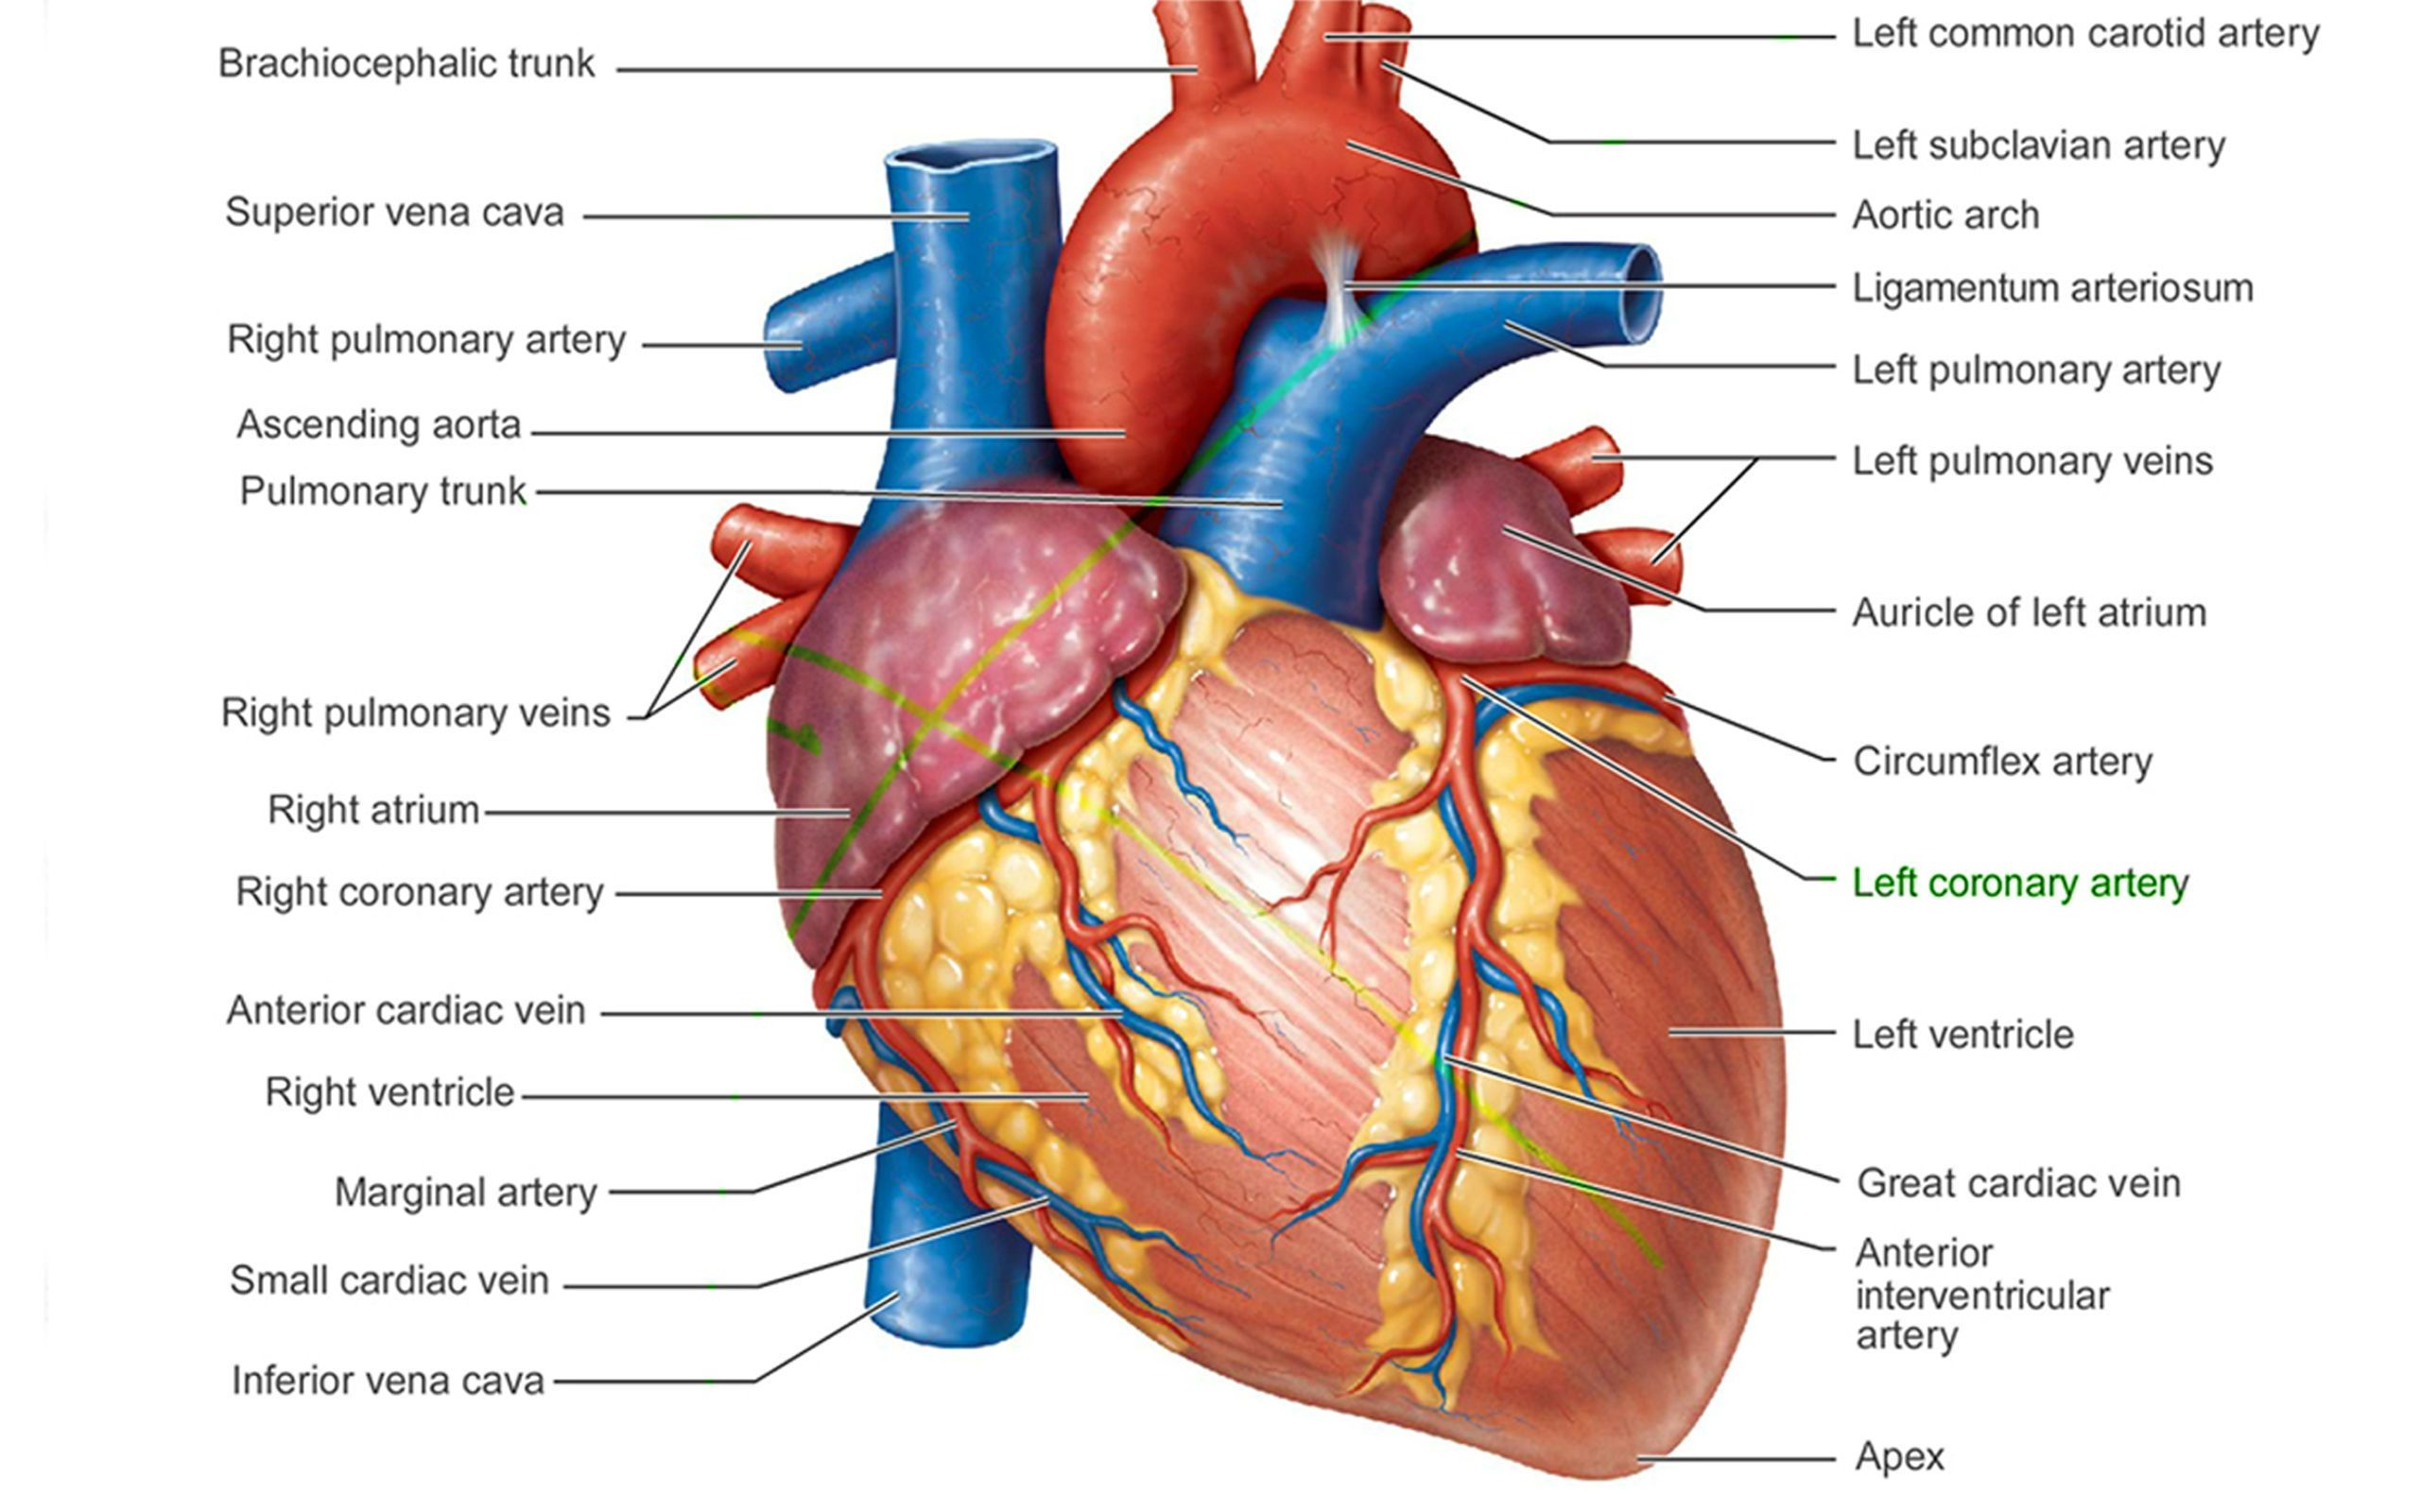 Pictures Of Human Heart Anatomy Anatomy Of The Human Heart 4k Ultra Hd Wallpaper